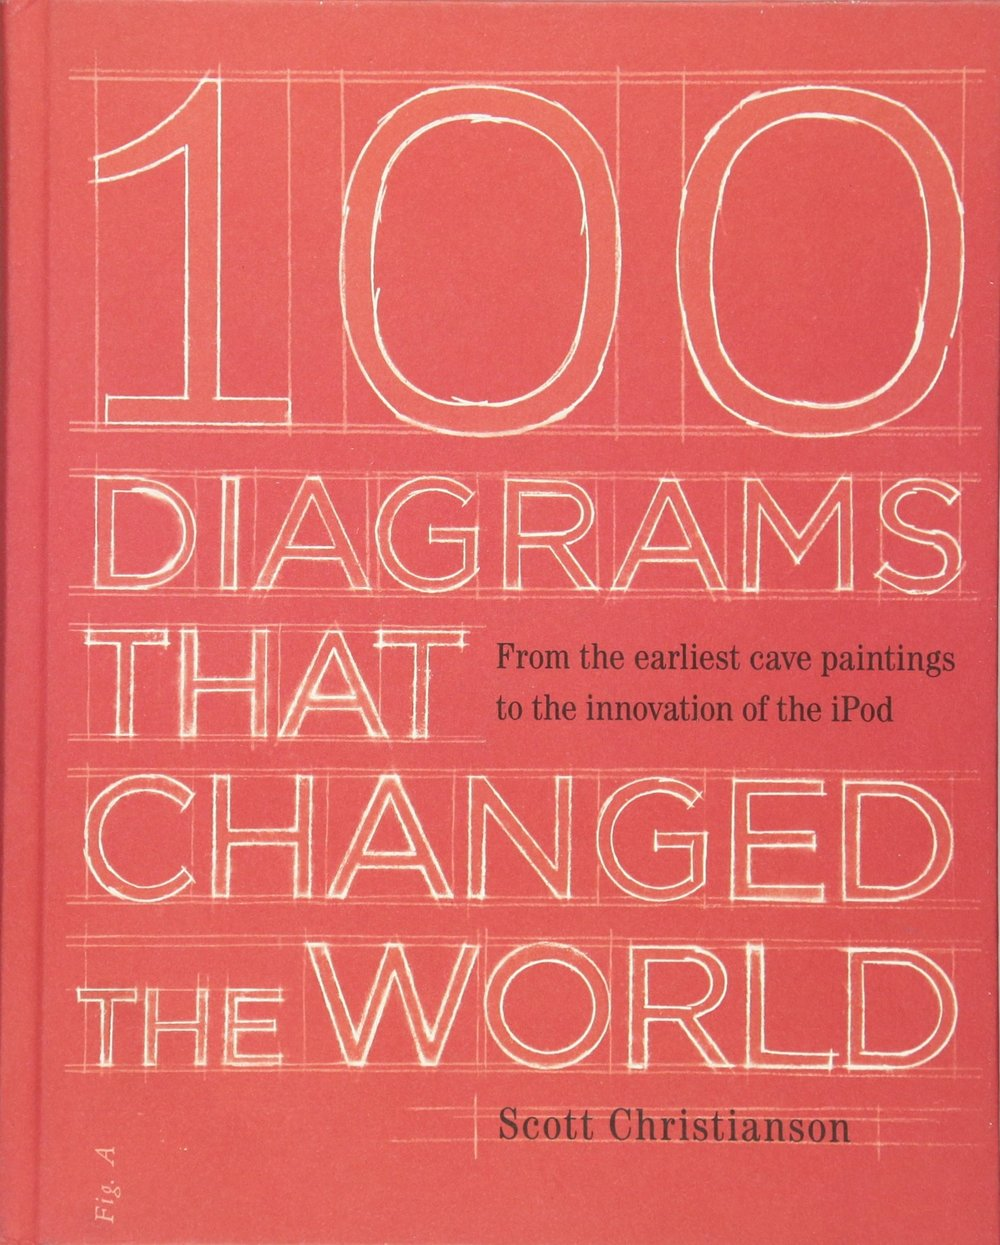 Copy of 100 Diagrams That Changed The World